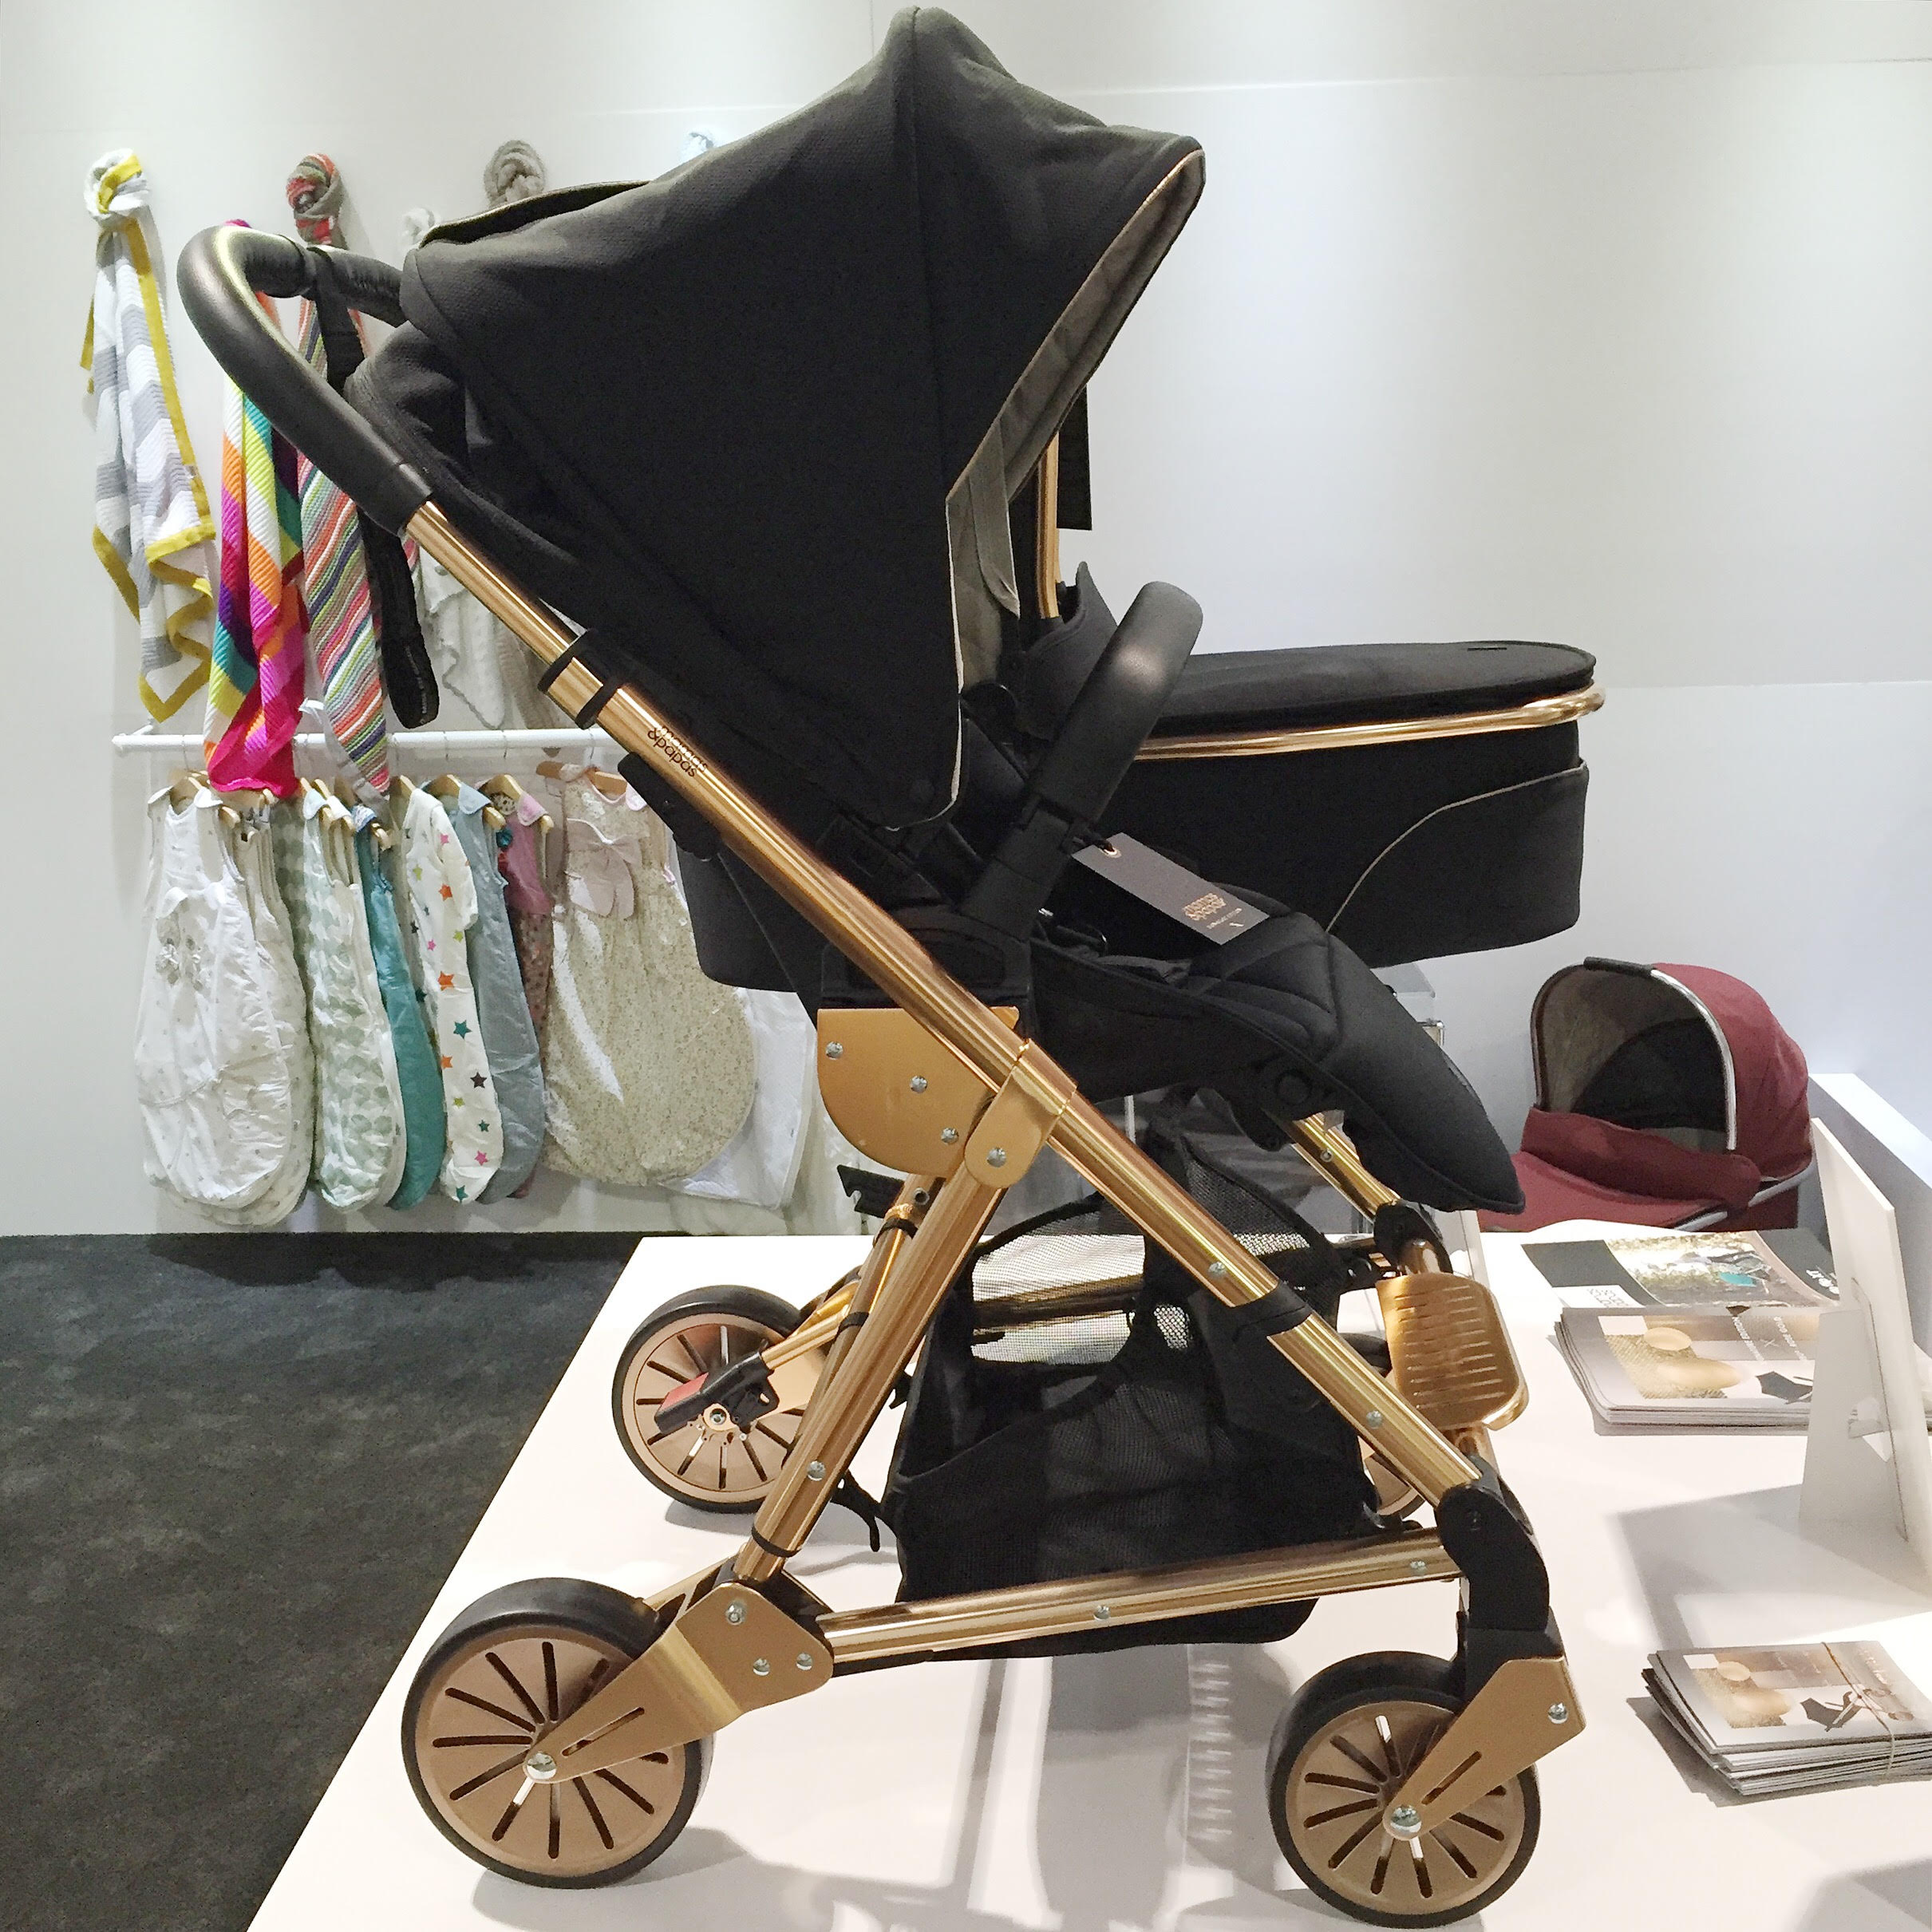 Top Baby Gear Trends for 2016 Mamas + Papas Rose Gold Stroller | Momma Society-The Community of Modern Moms | www.mommasociety.com | Join our community on Instagram @MommaSociety